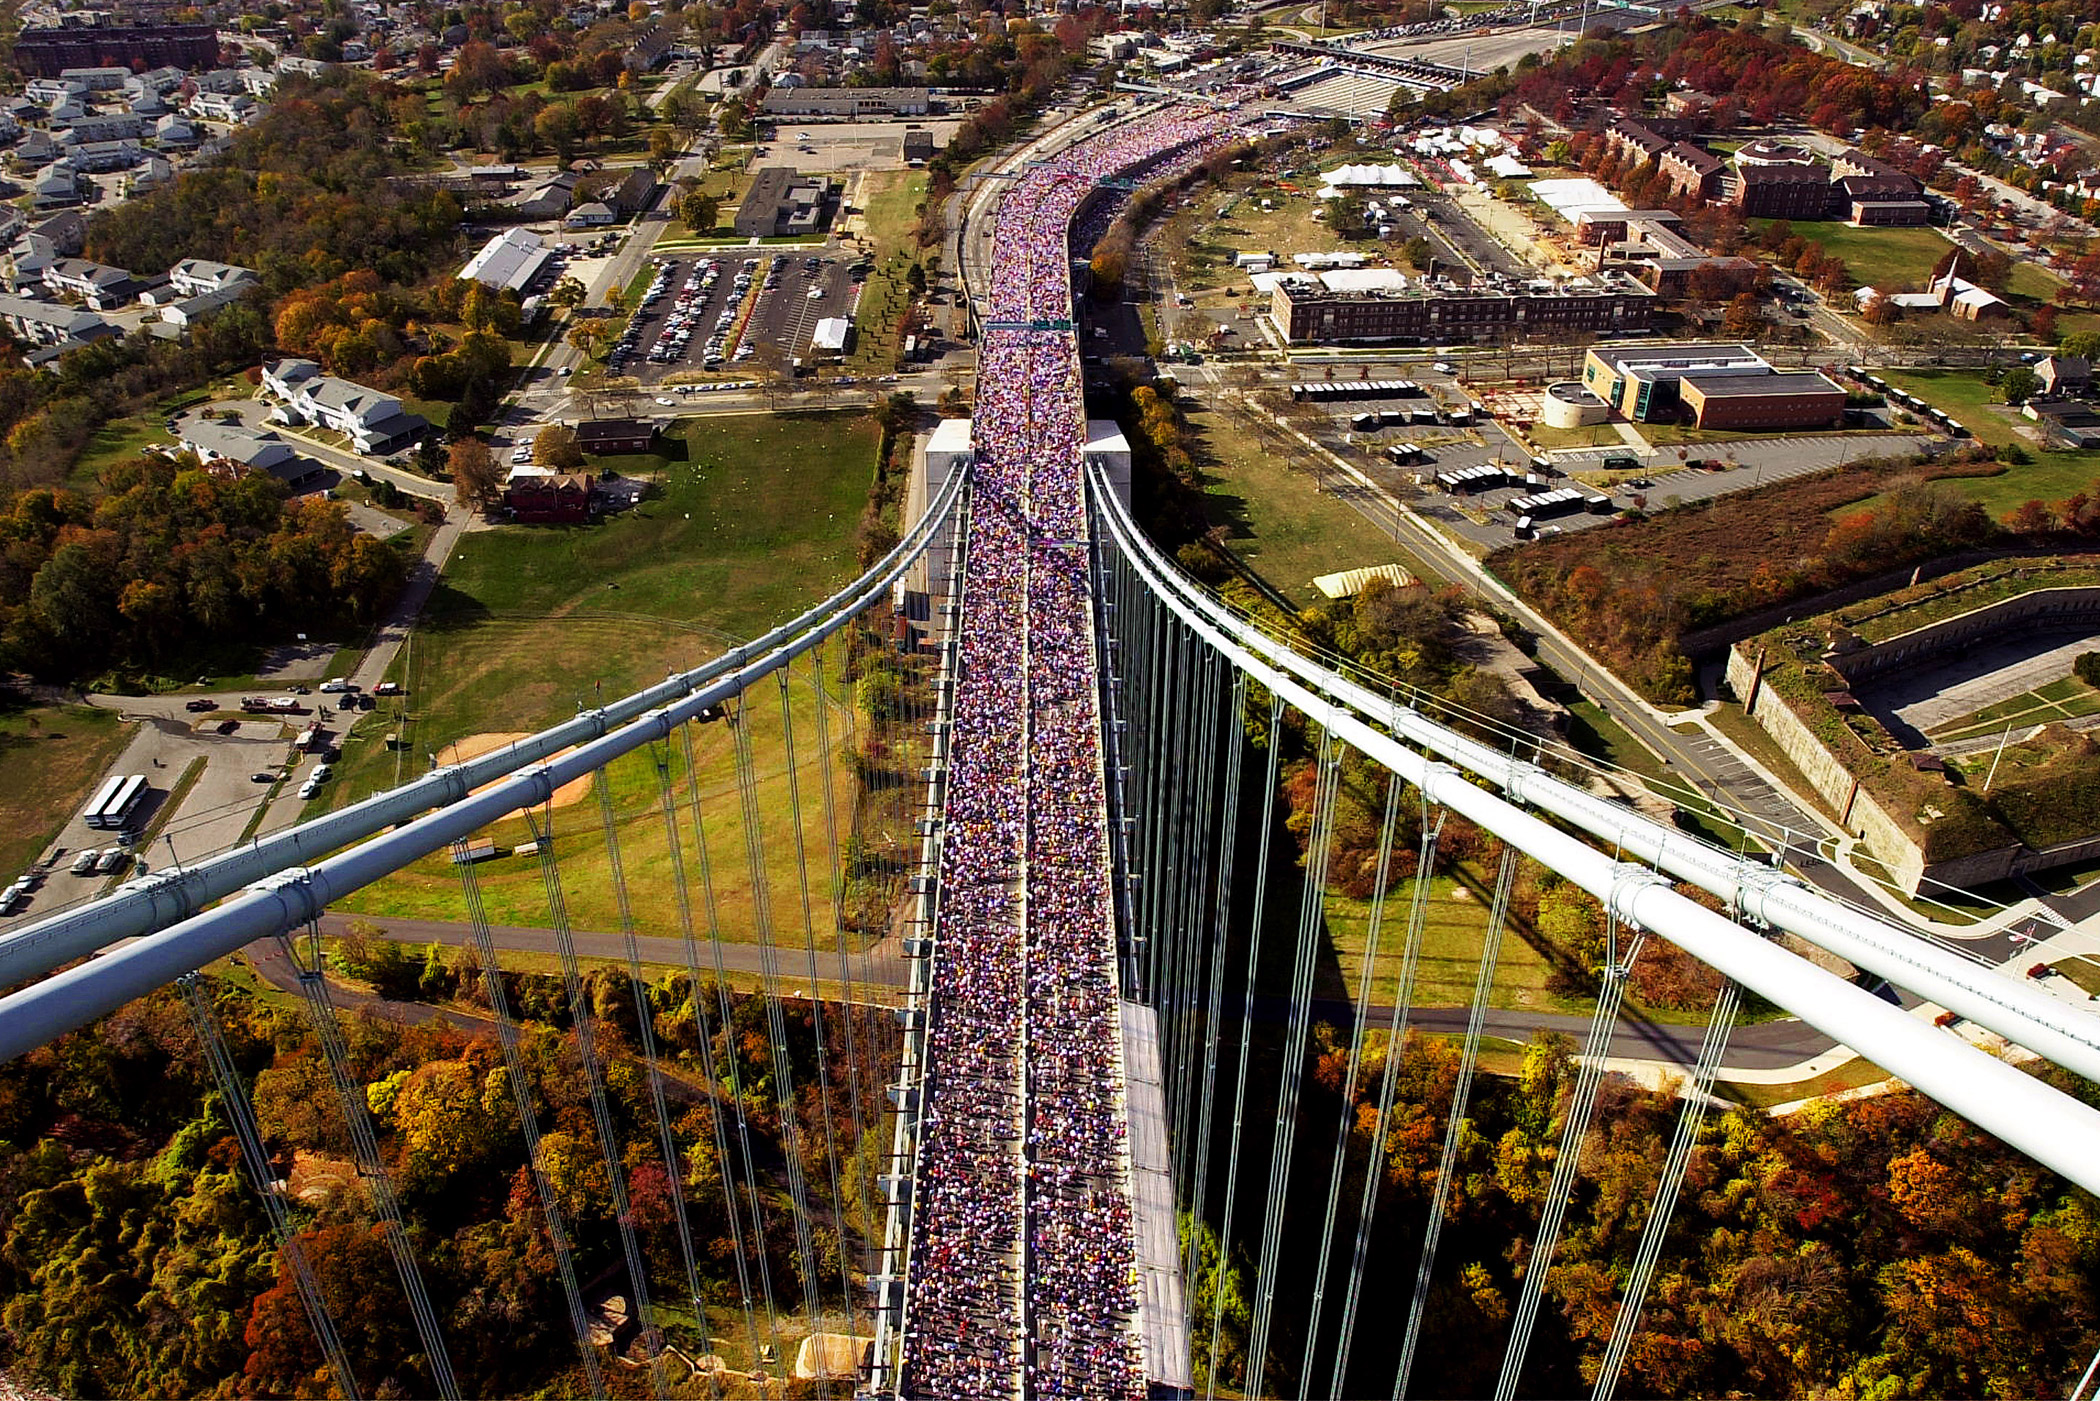 Runners make their way across the Verrazano Narrows Bridge in New York at the start of the New York City Marathon on Nov. 5, 2000.